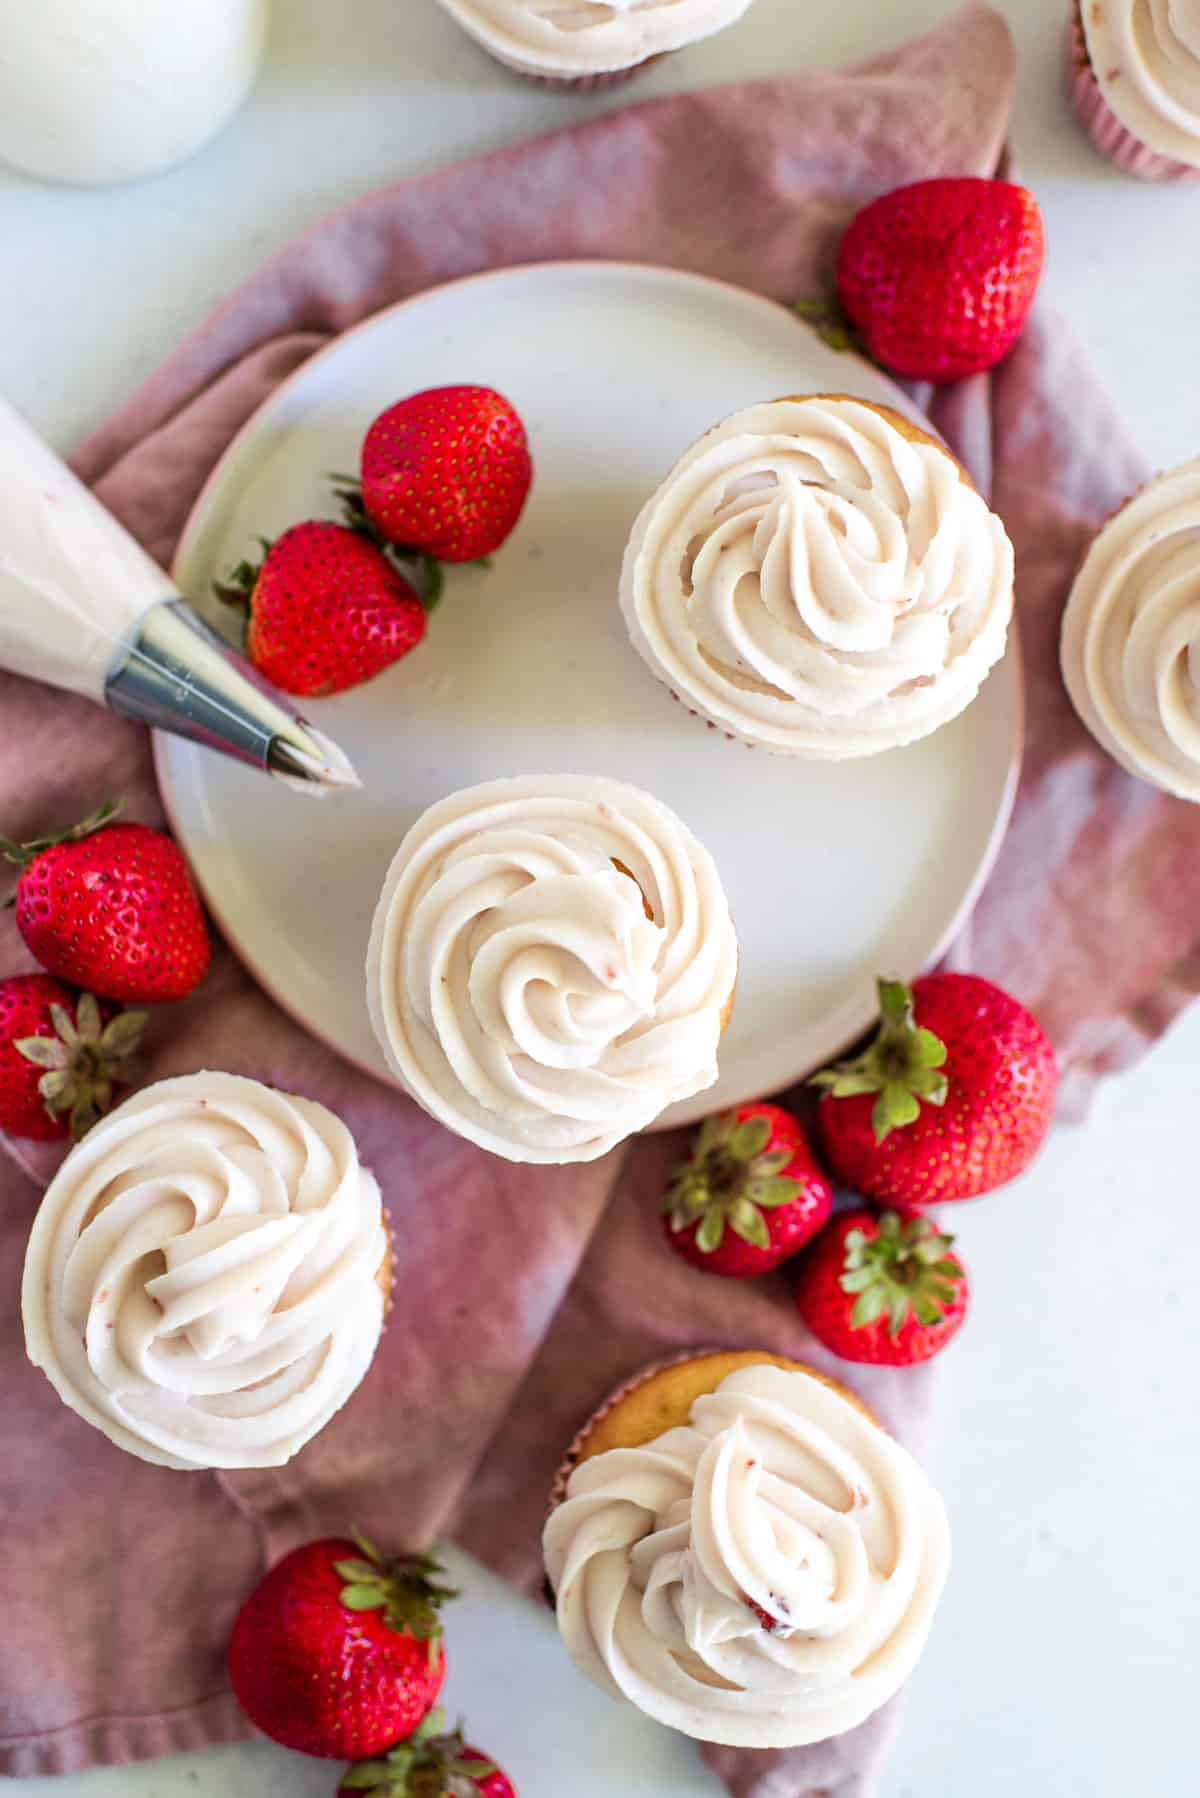 strawberry cream cheese frosting piped onto delicious cupcakes